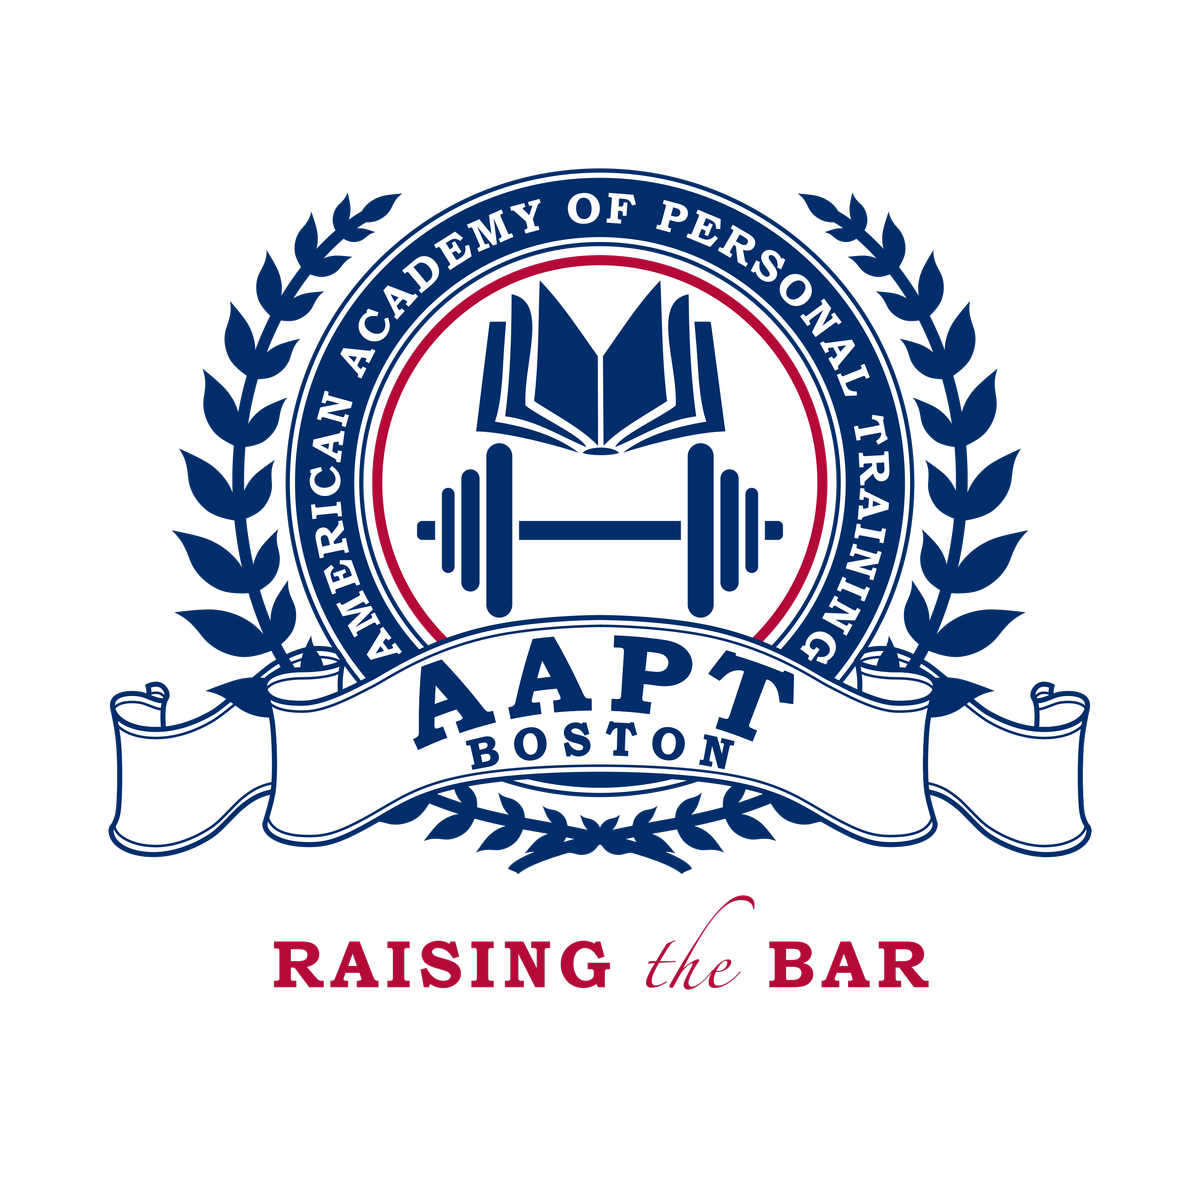 American Academy of Personal Training Boston logo